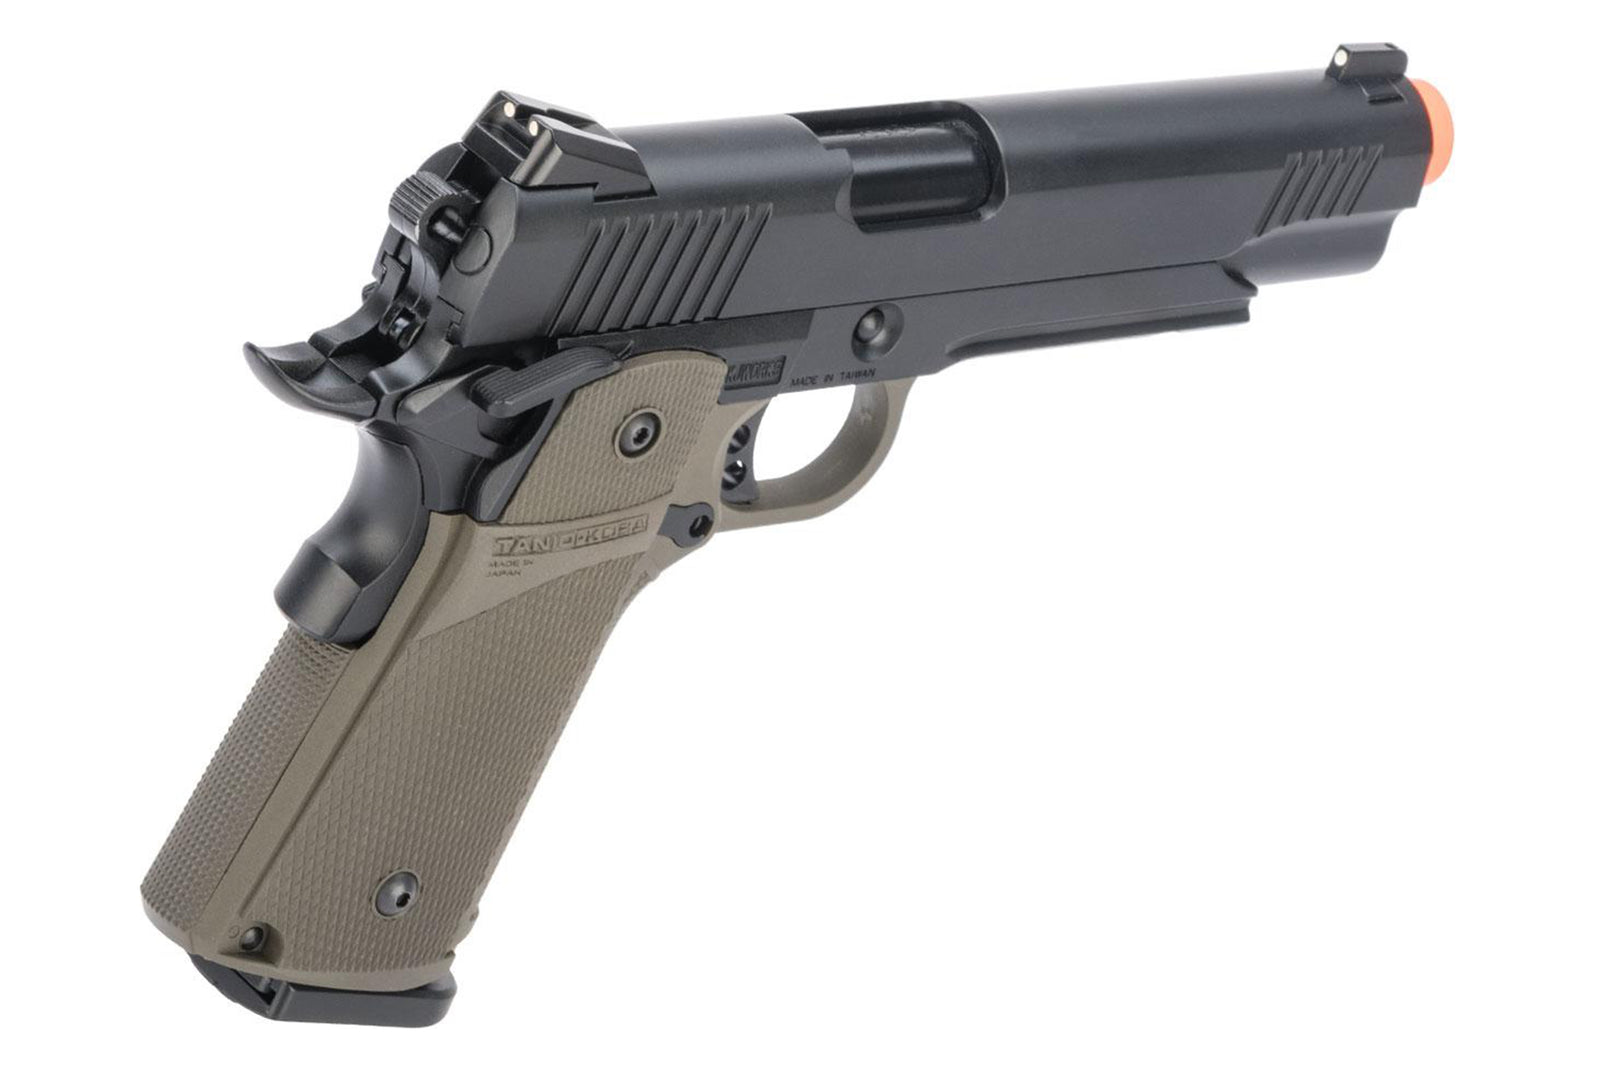 KJW Full Metal Custom 1911 Tactical HI-CAPA Gas Blowback